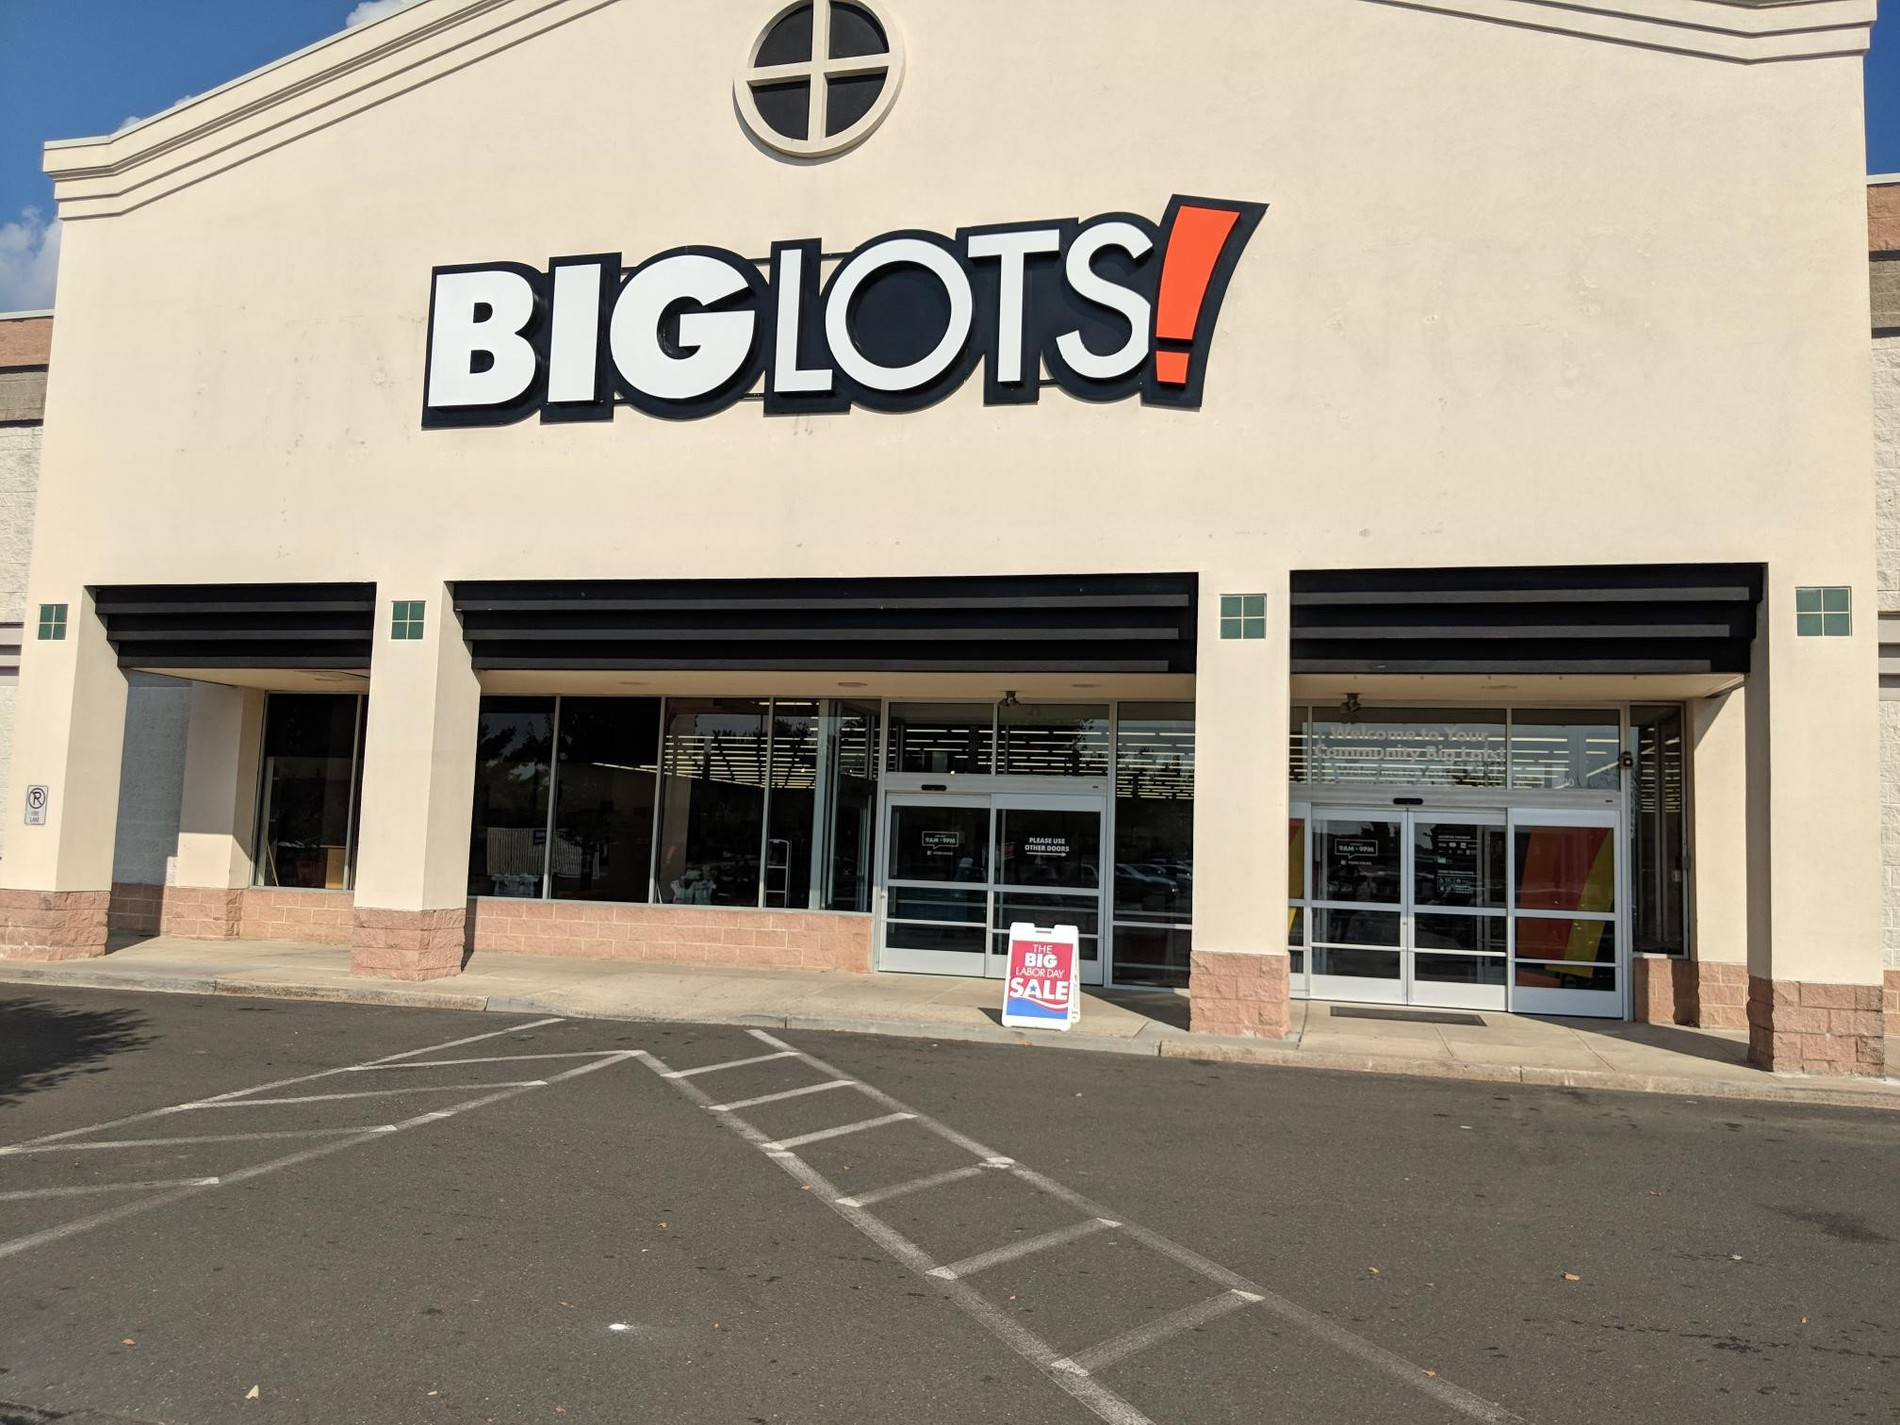 Freehold, NJ Big Lots Store #5273